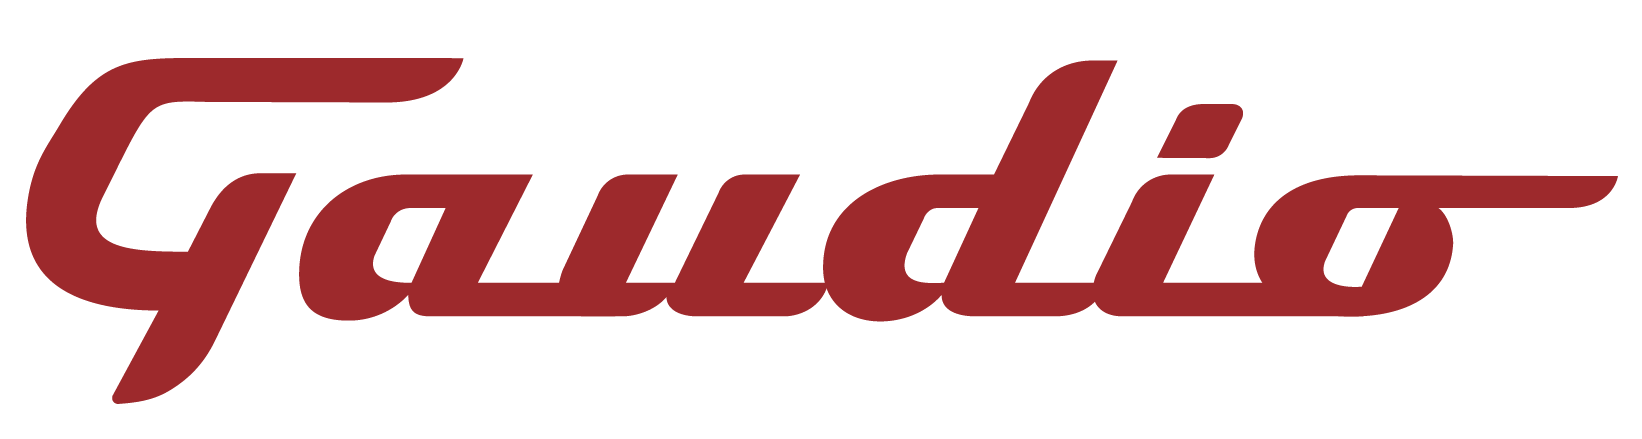 cropped-Gaudio_logotipo_red.png